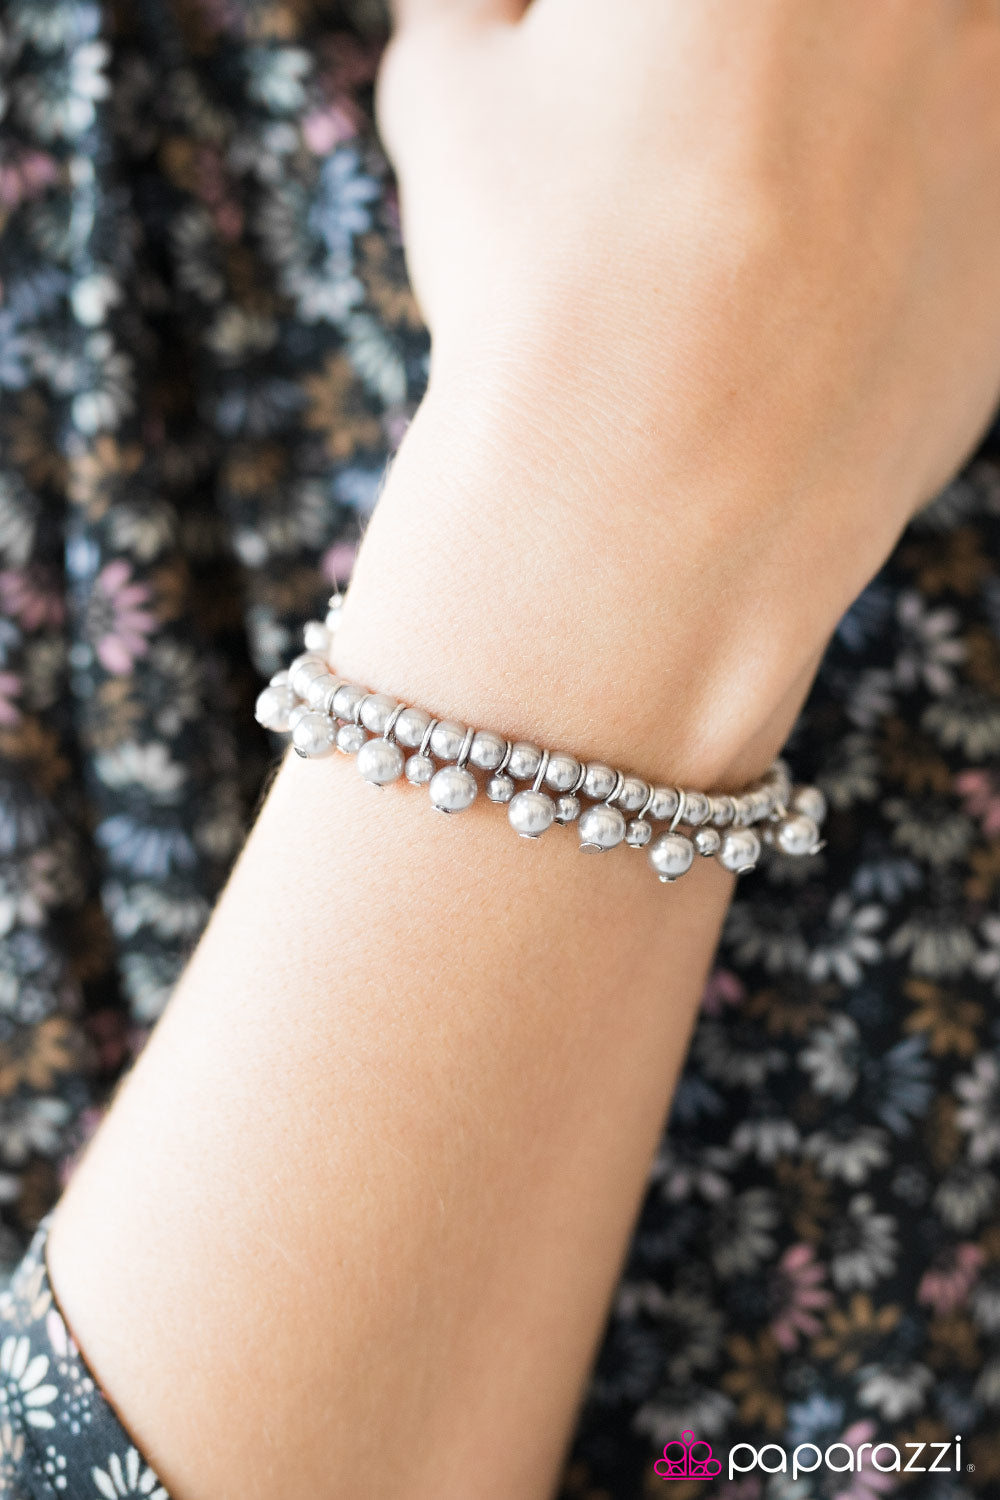 Date With Divine - Silver - Paparazzi bracelet